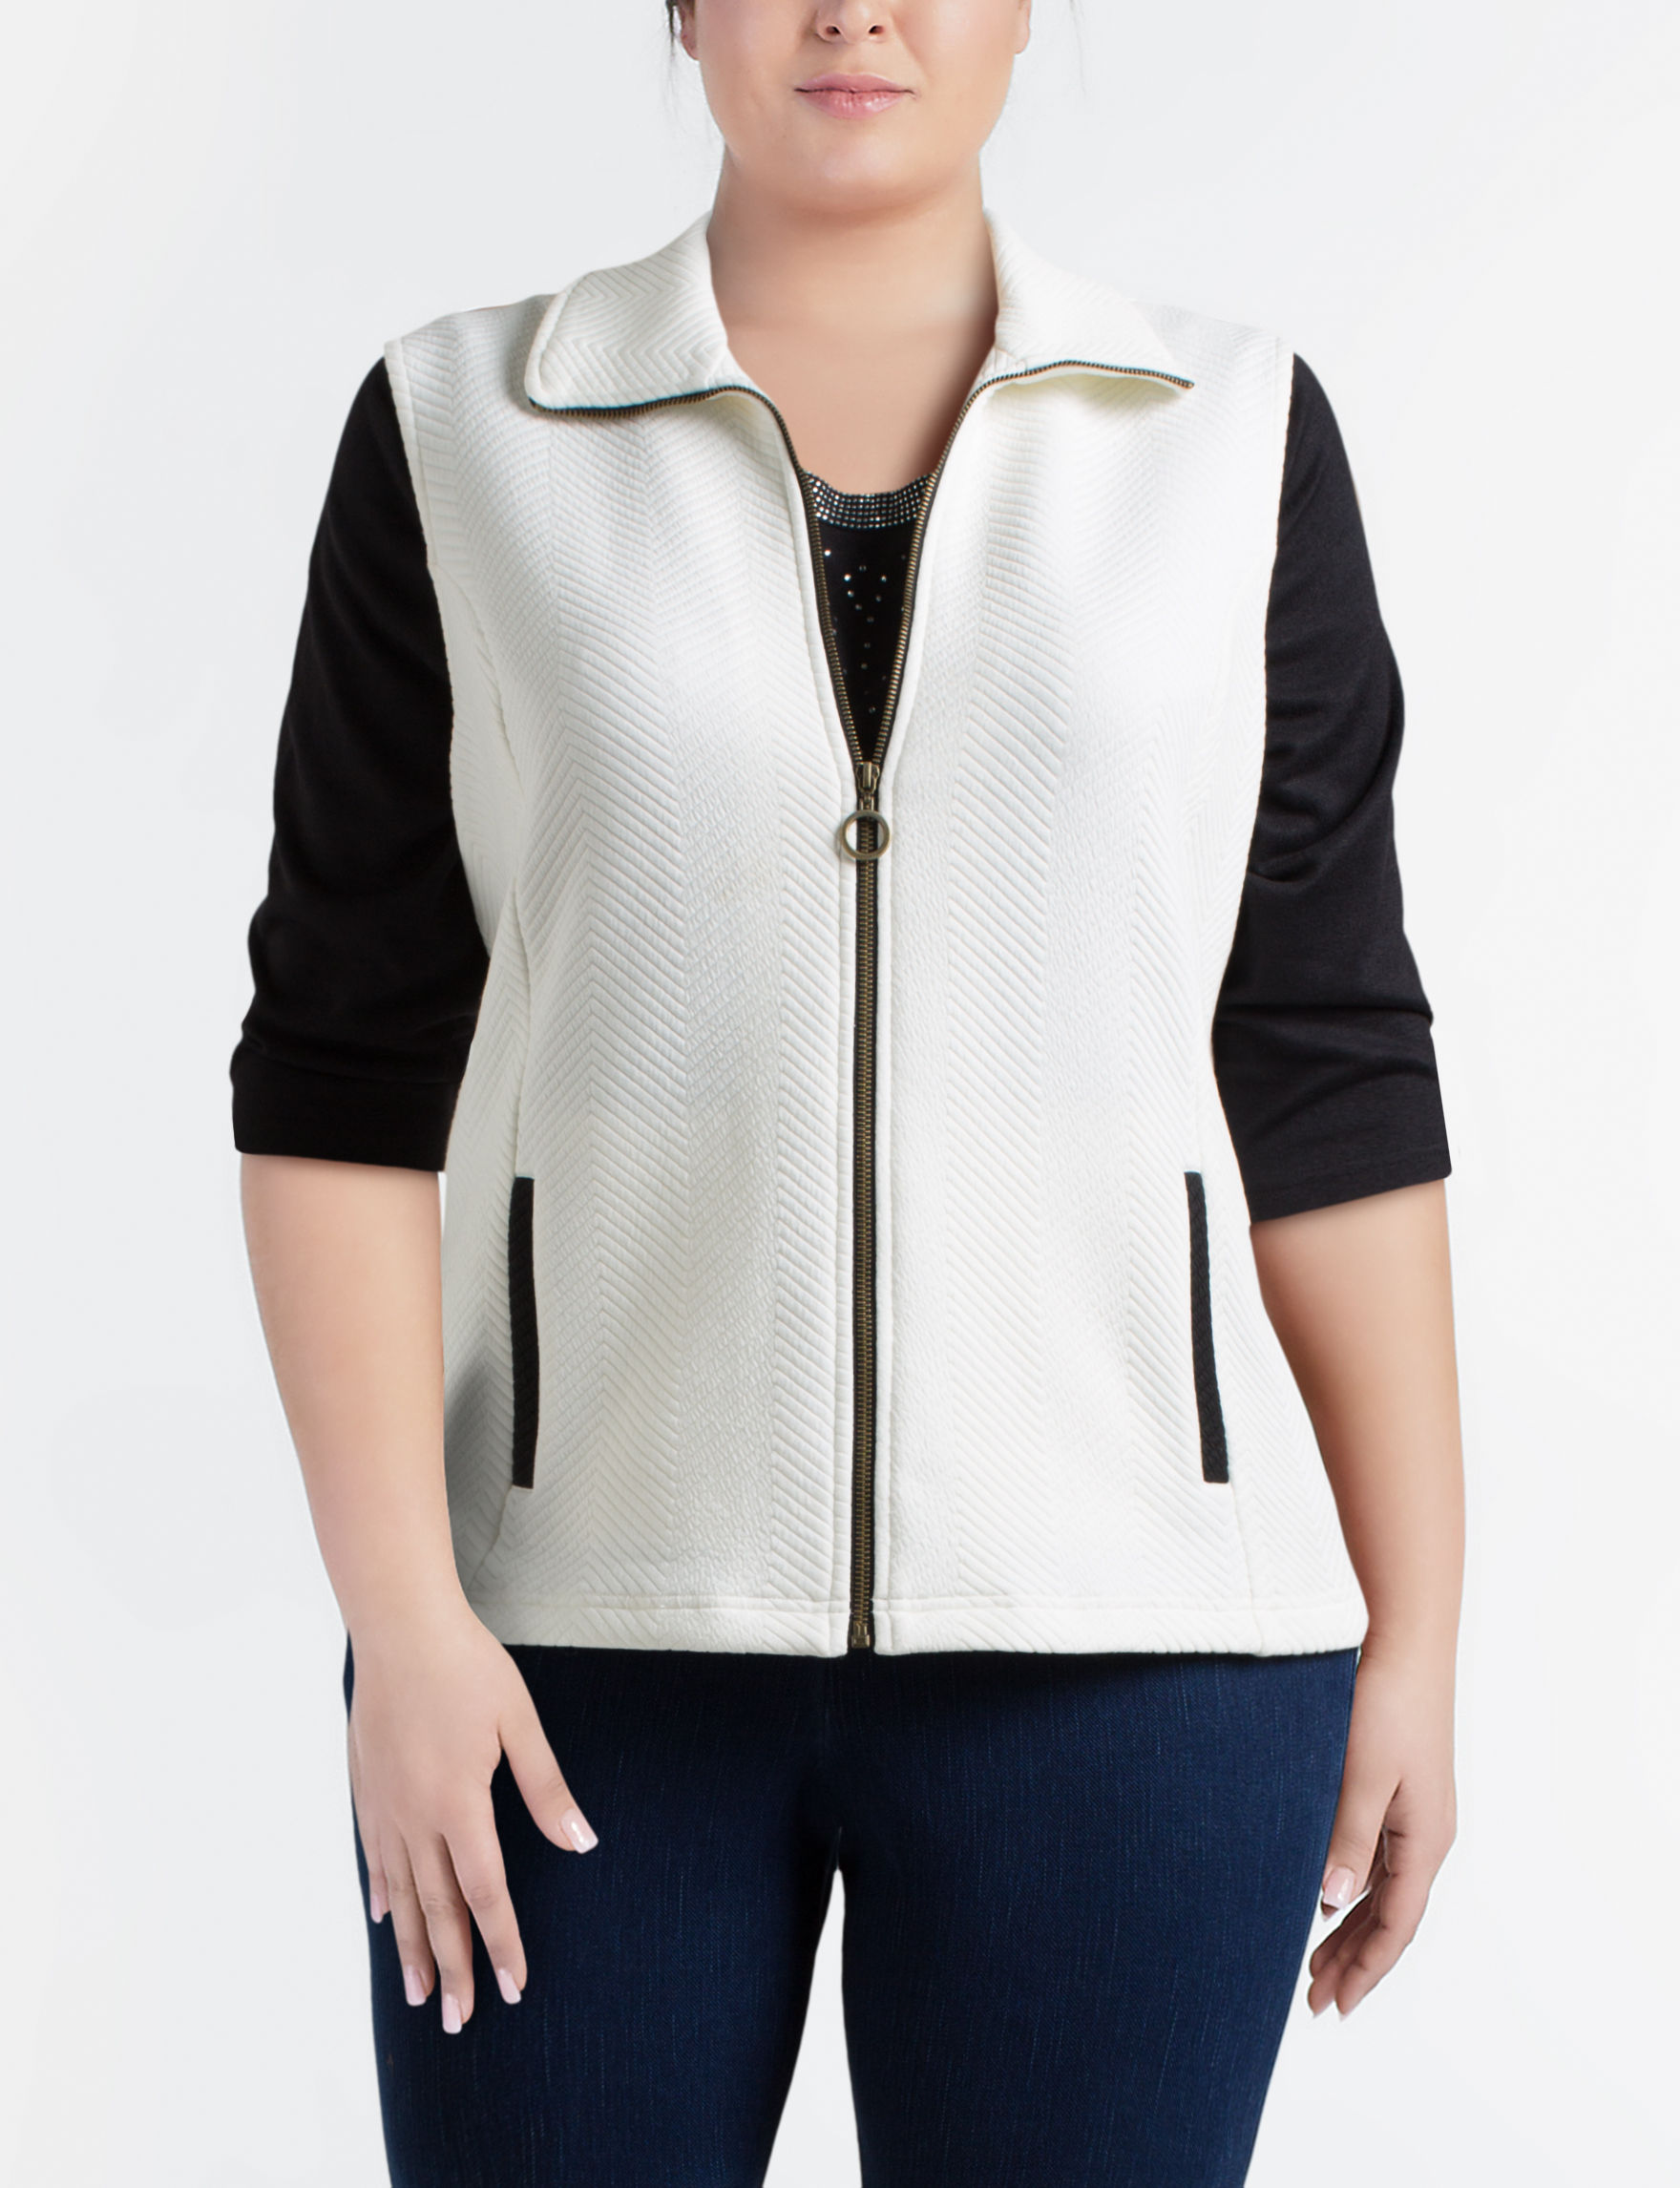 Cathy Daniels White Sweater Vests